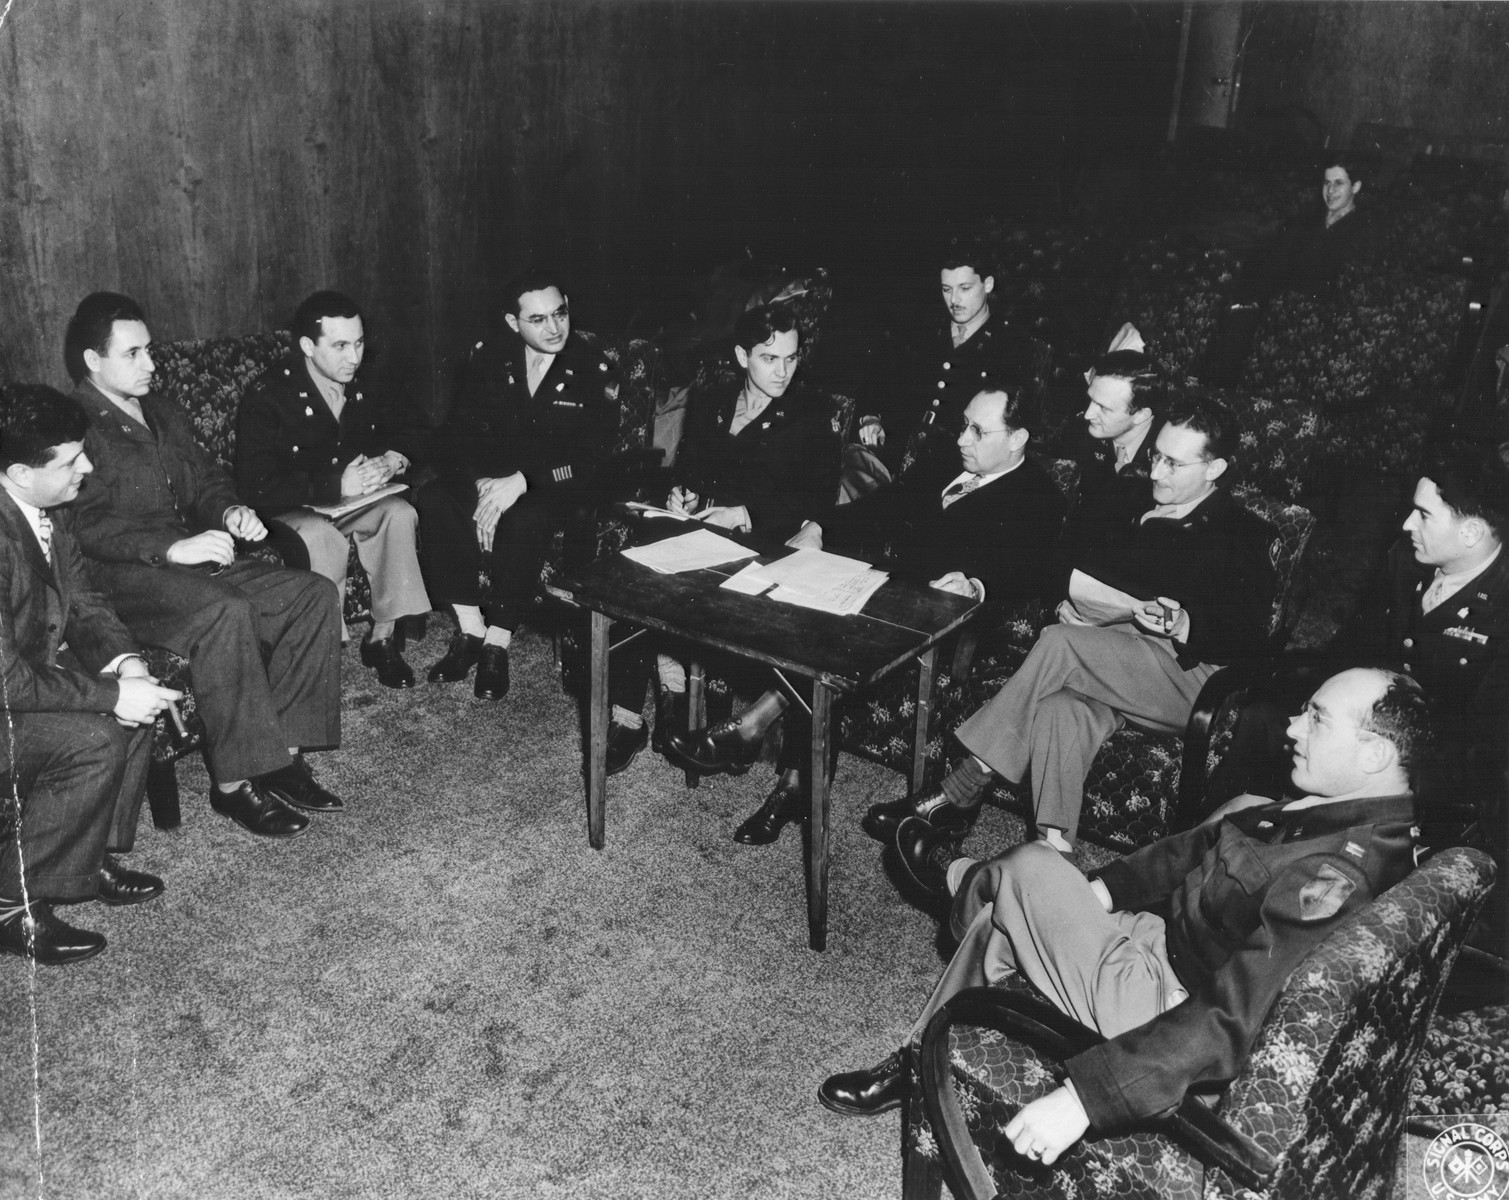 U.S. army chaplains attend a meeting in Frankfurt-am-Main called by Samuel Haber.  Pictured from left to right are: unknown, Samuel Burstein, Salinger (?), Max Brande (?), Mayer Abramowitz, Eliphant, Samuel Haber (sitting at table), Abraham Hyman, Jerry Robbins, unknown, unknown.